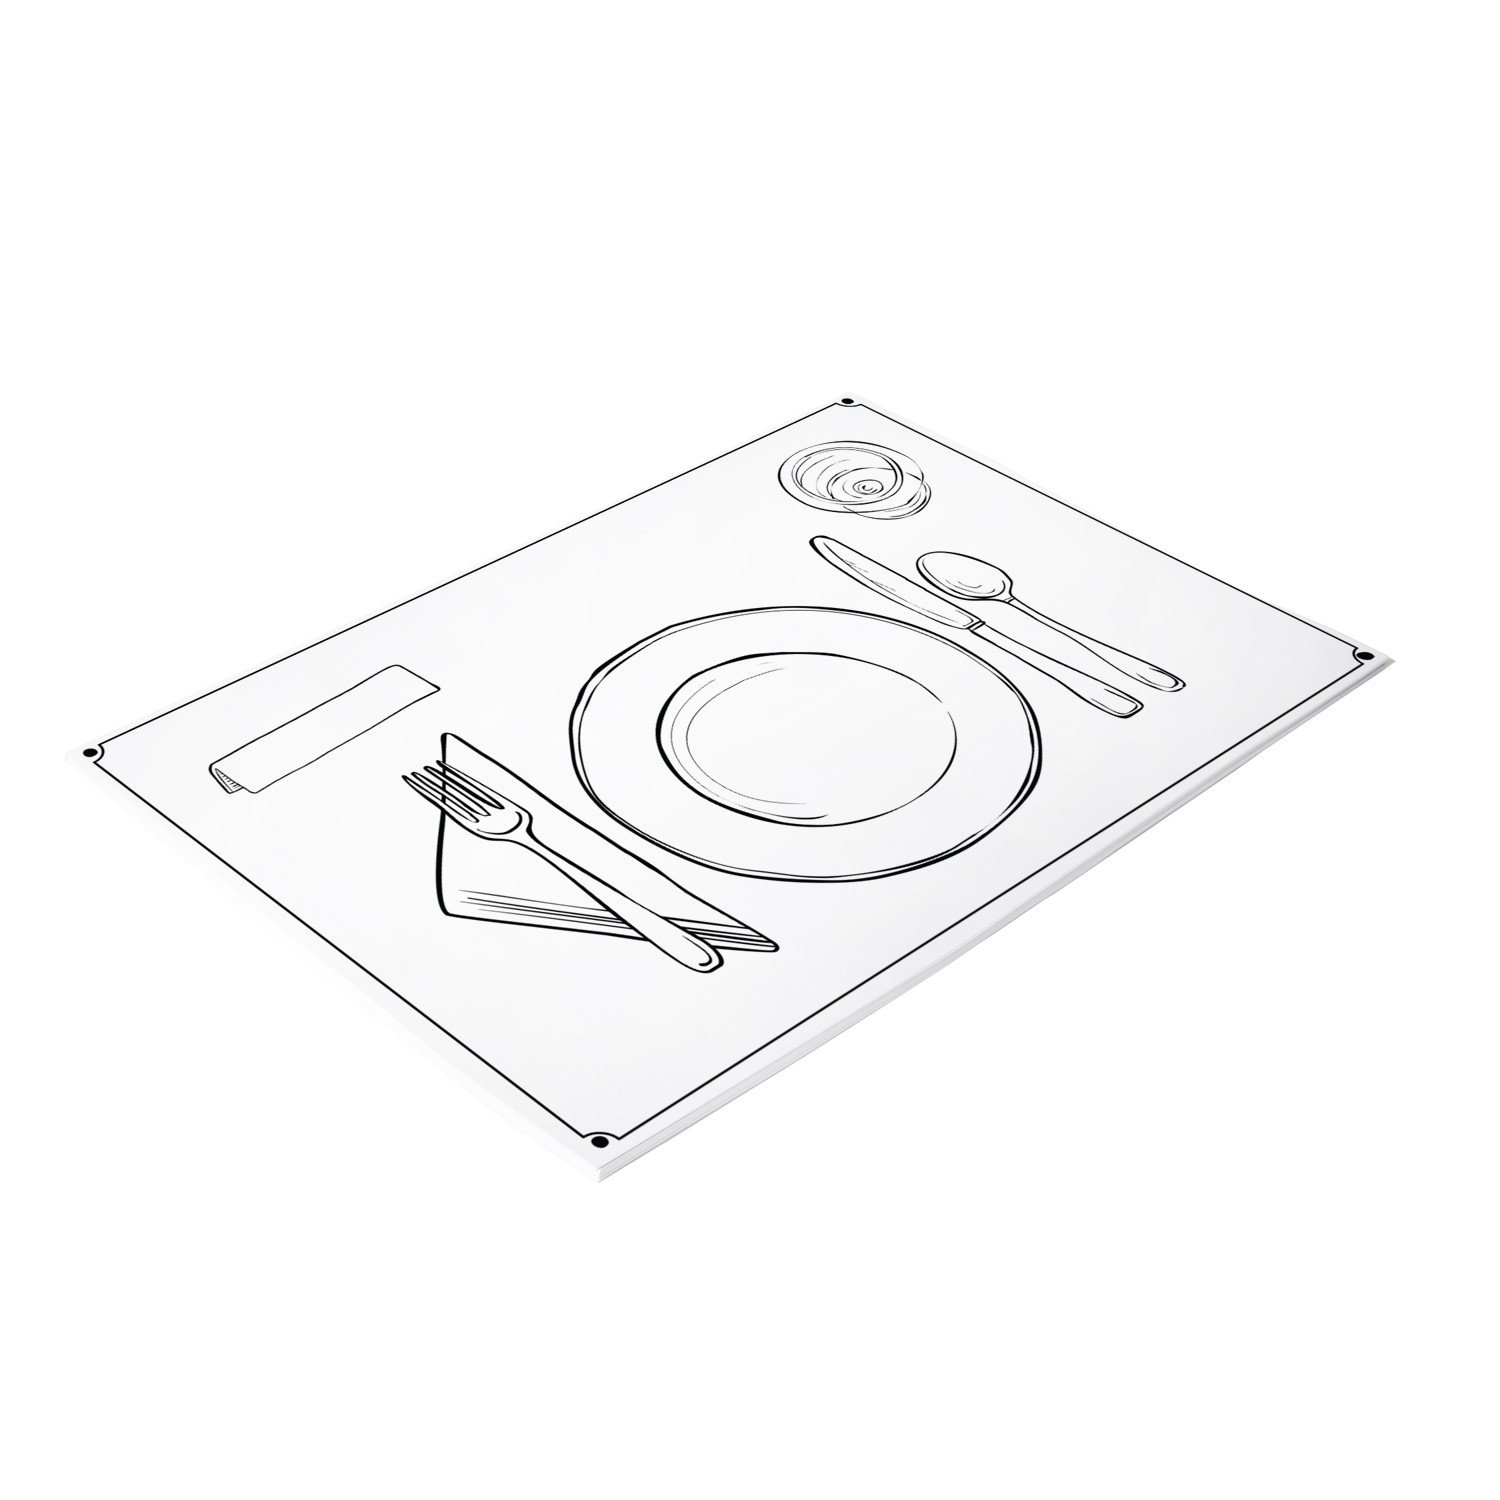 1500x1500 Paper Placemats Dinner Plate Cocolelly